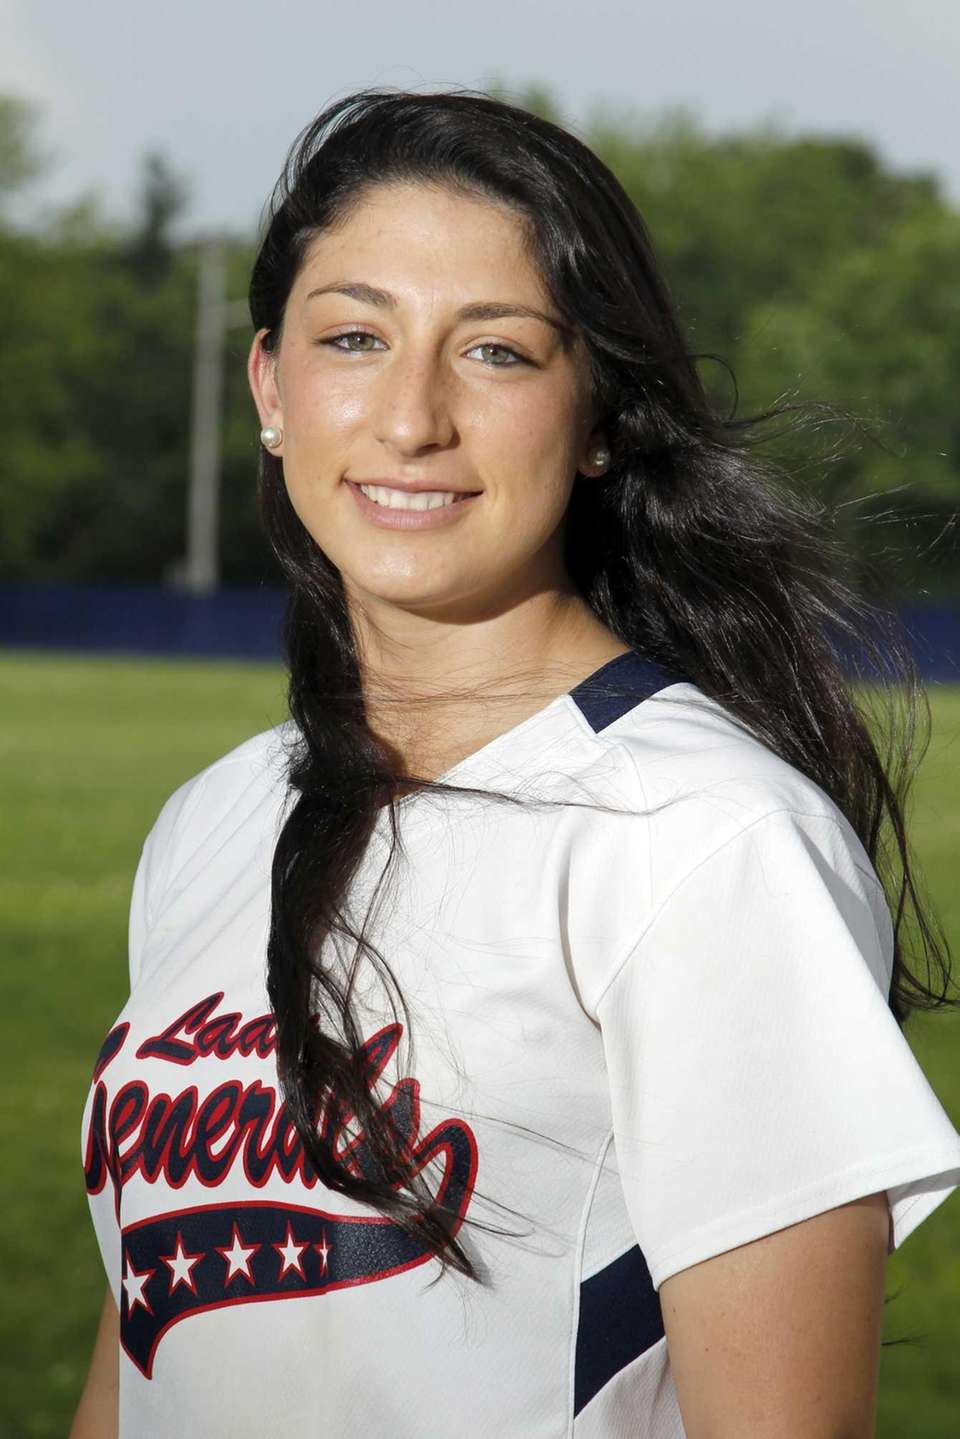 JENA COZZA Nassau Player of the Year Shortstop,